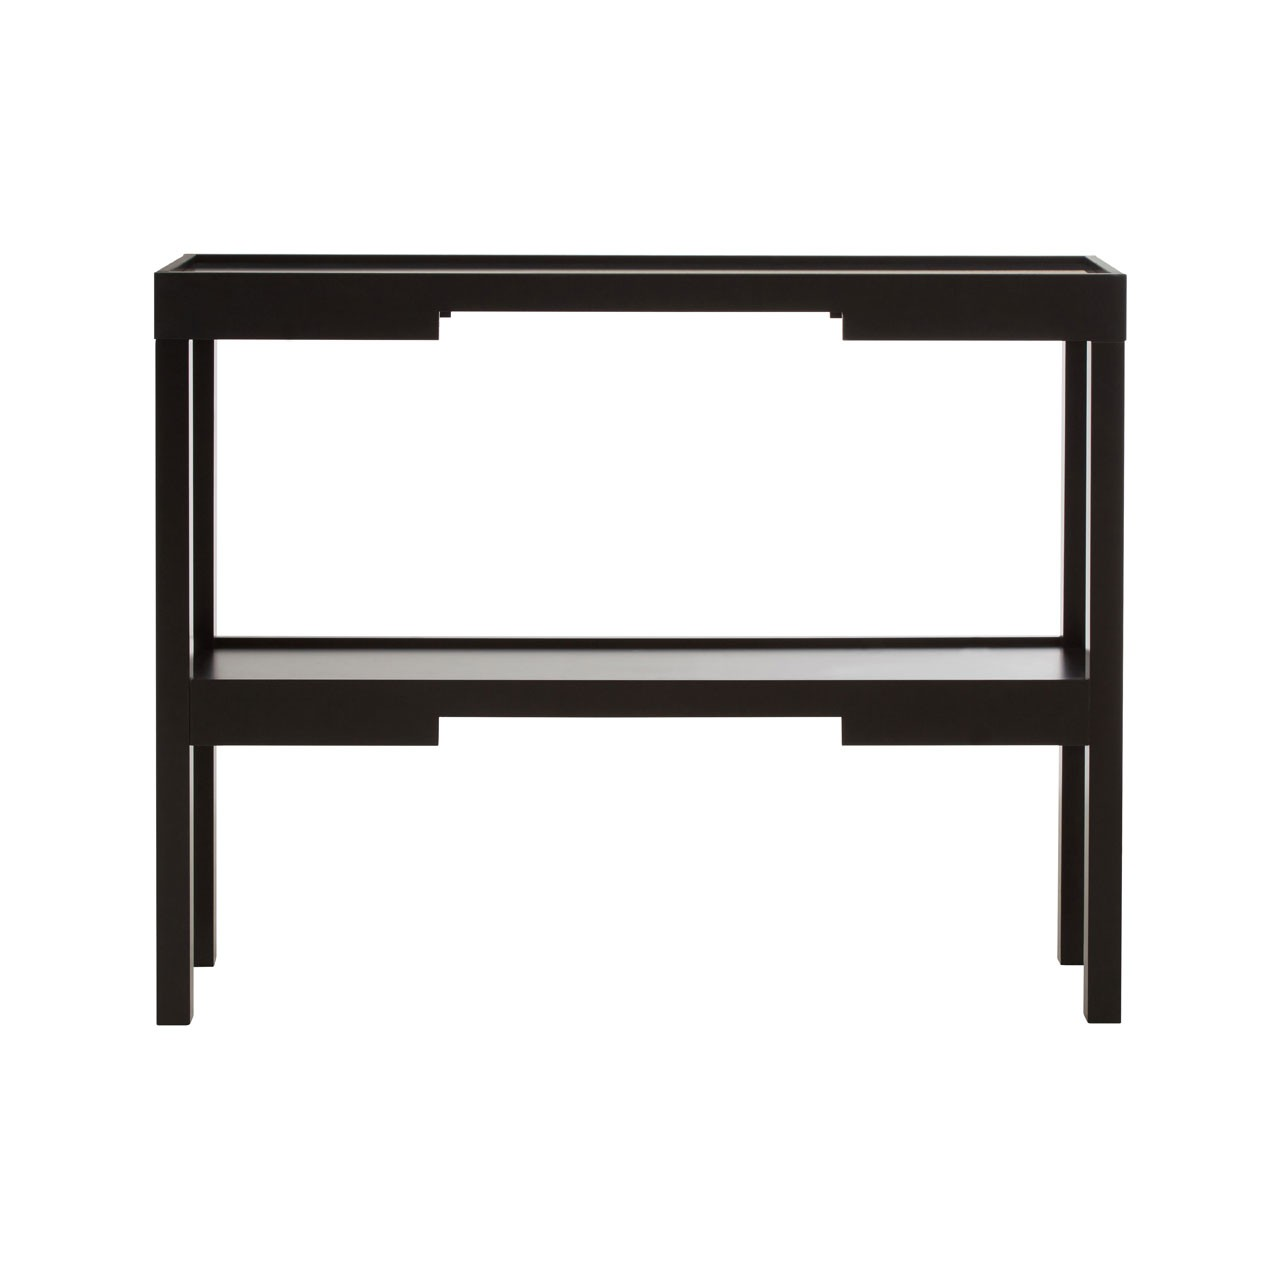 Osaka Console Table Black MDF With Shelf For Home Office